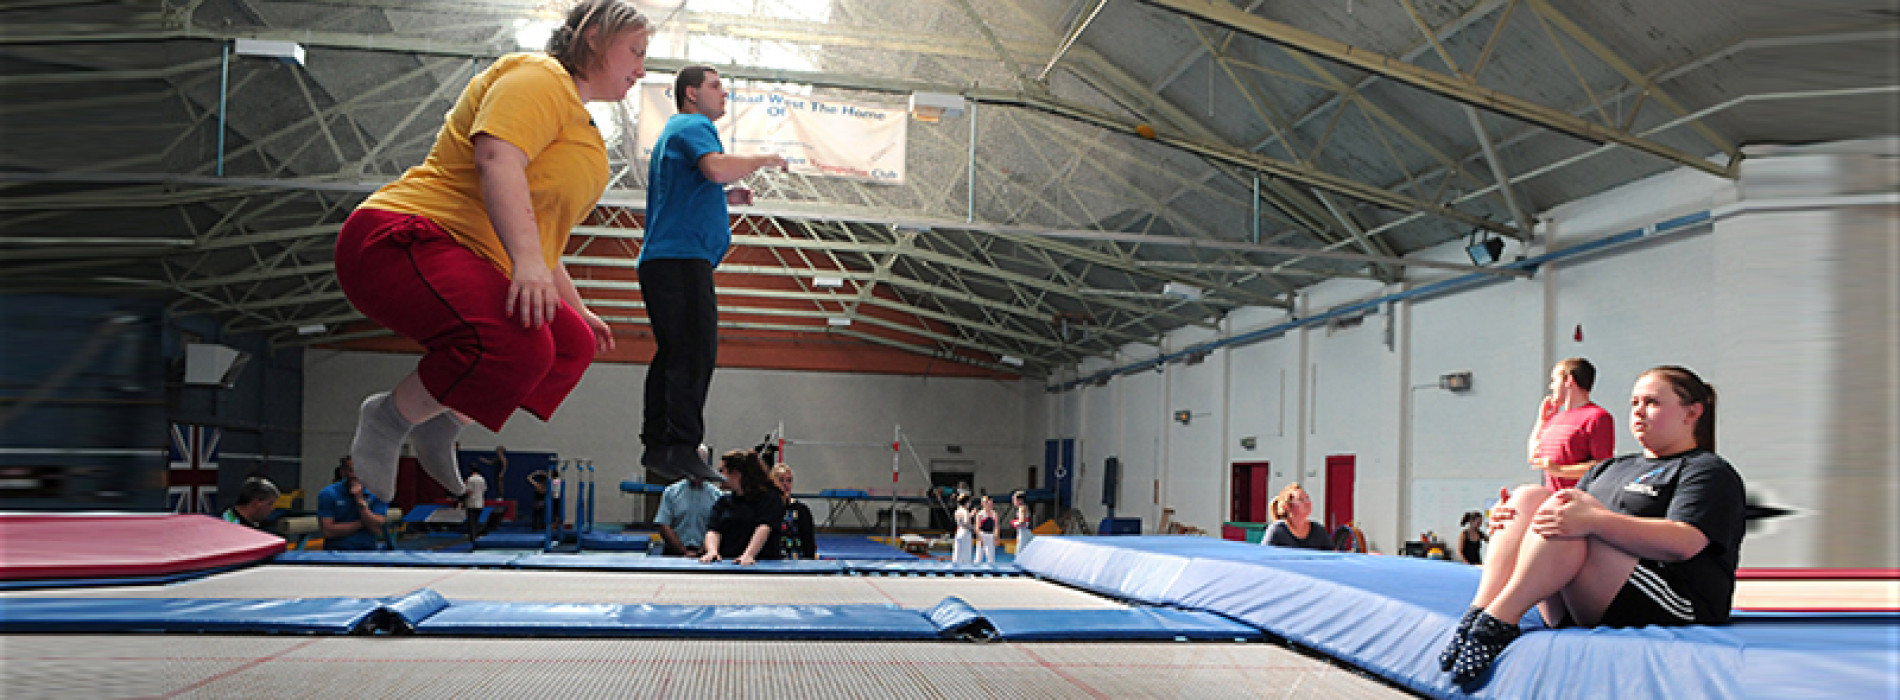 Autismability How A Trampolining Project Can Impact -6203